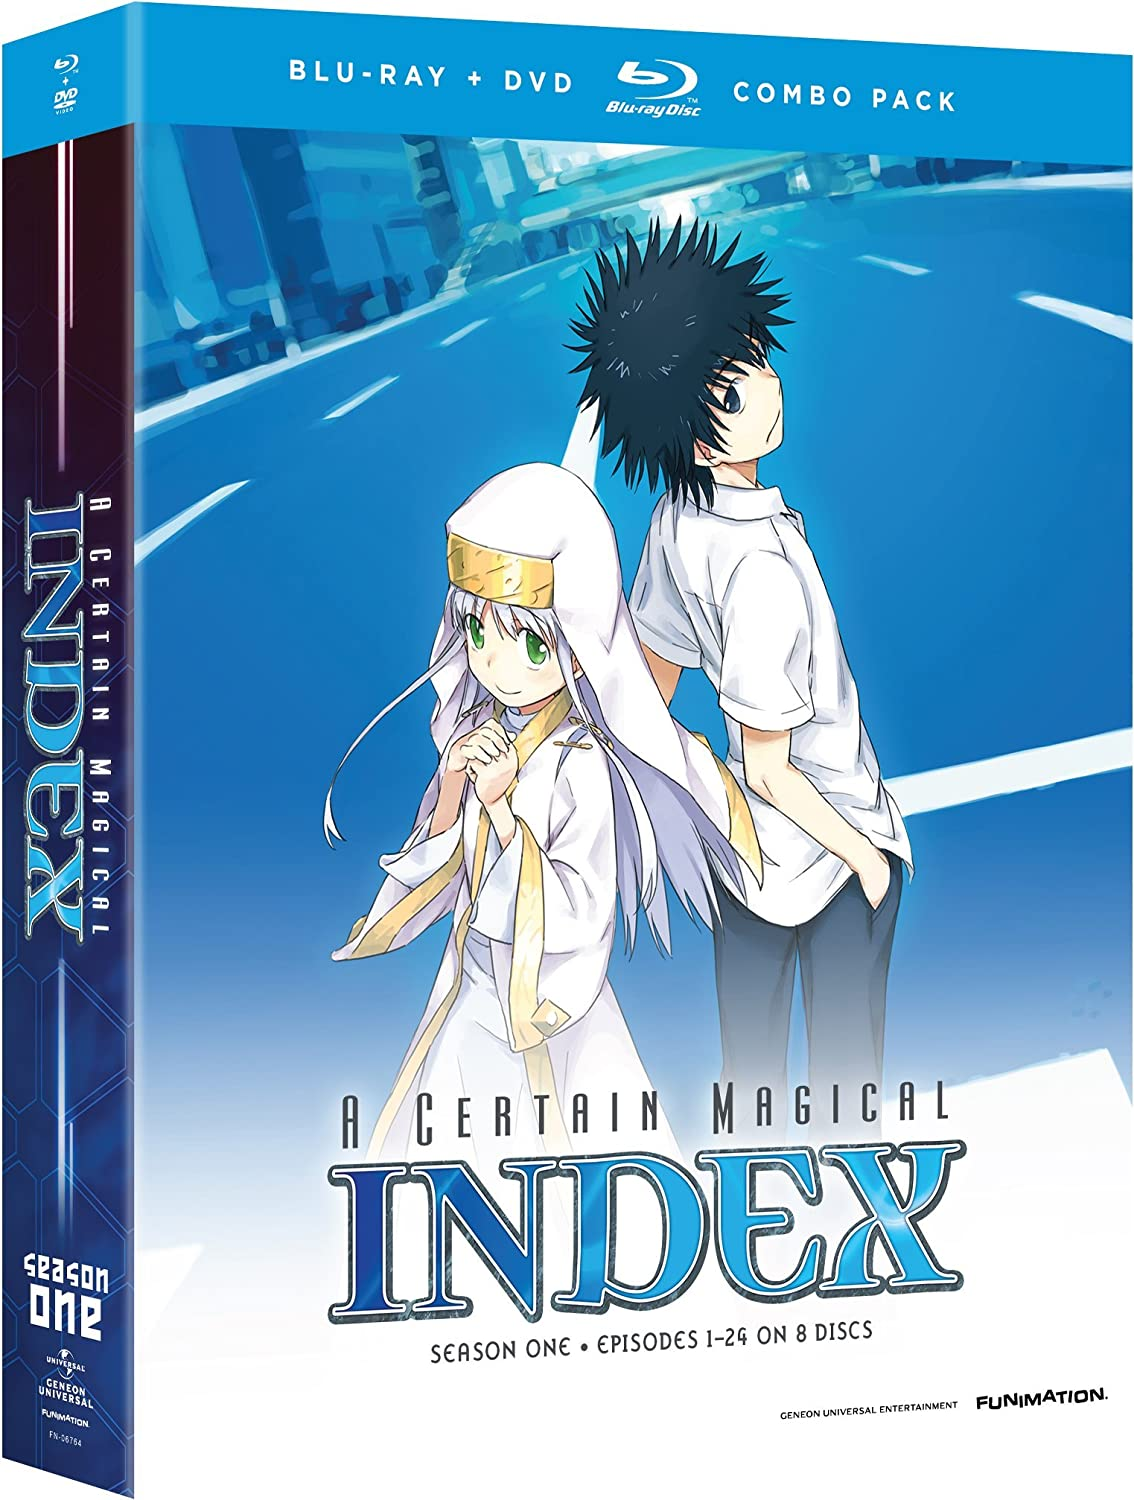 A Certain Magical Index Season 1 Blu-ray/DVD (Dual Audio)